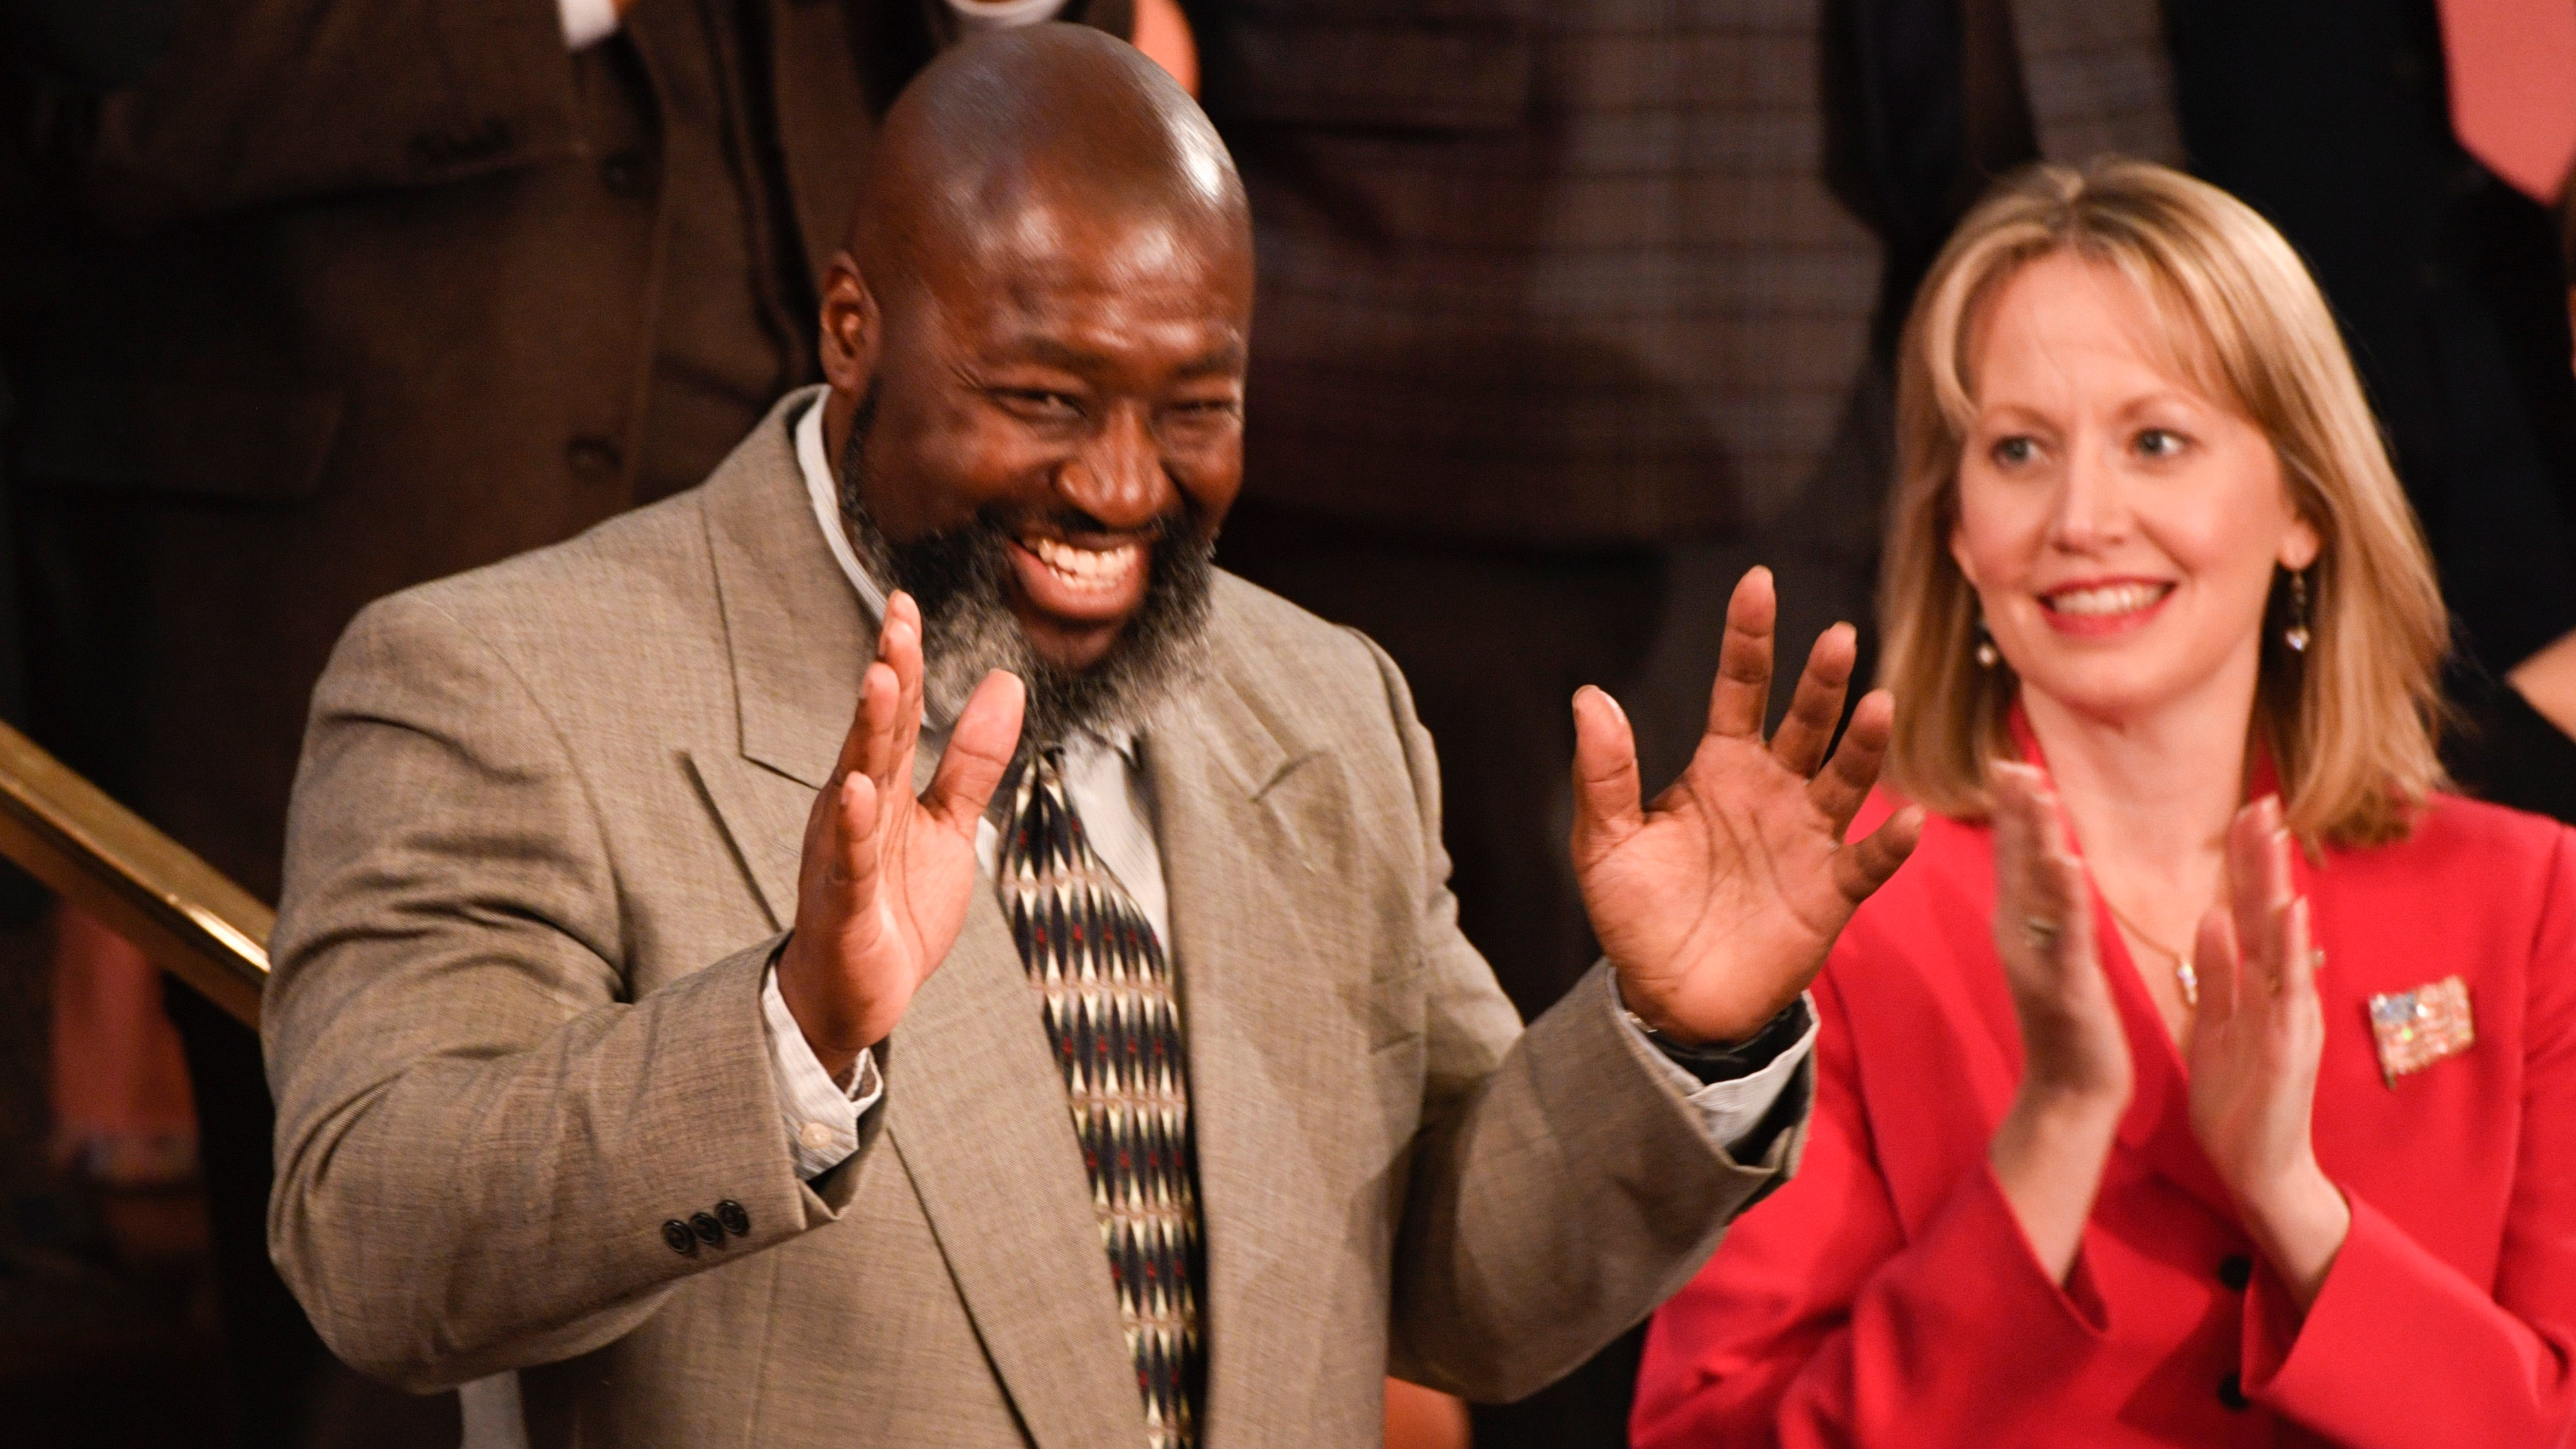 Matthew Charles is recognized by President Donald Trump during the State of the Union address.